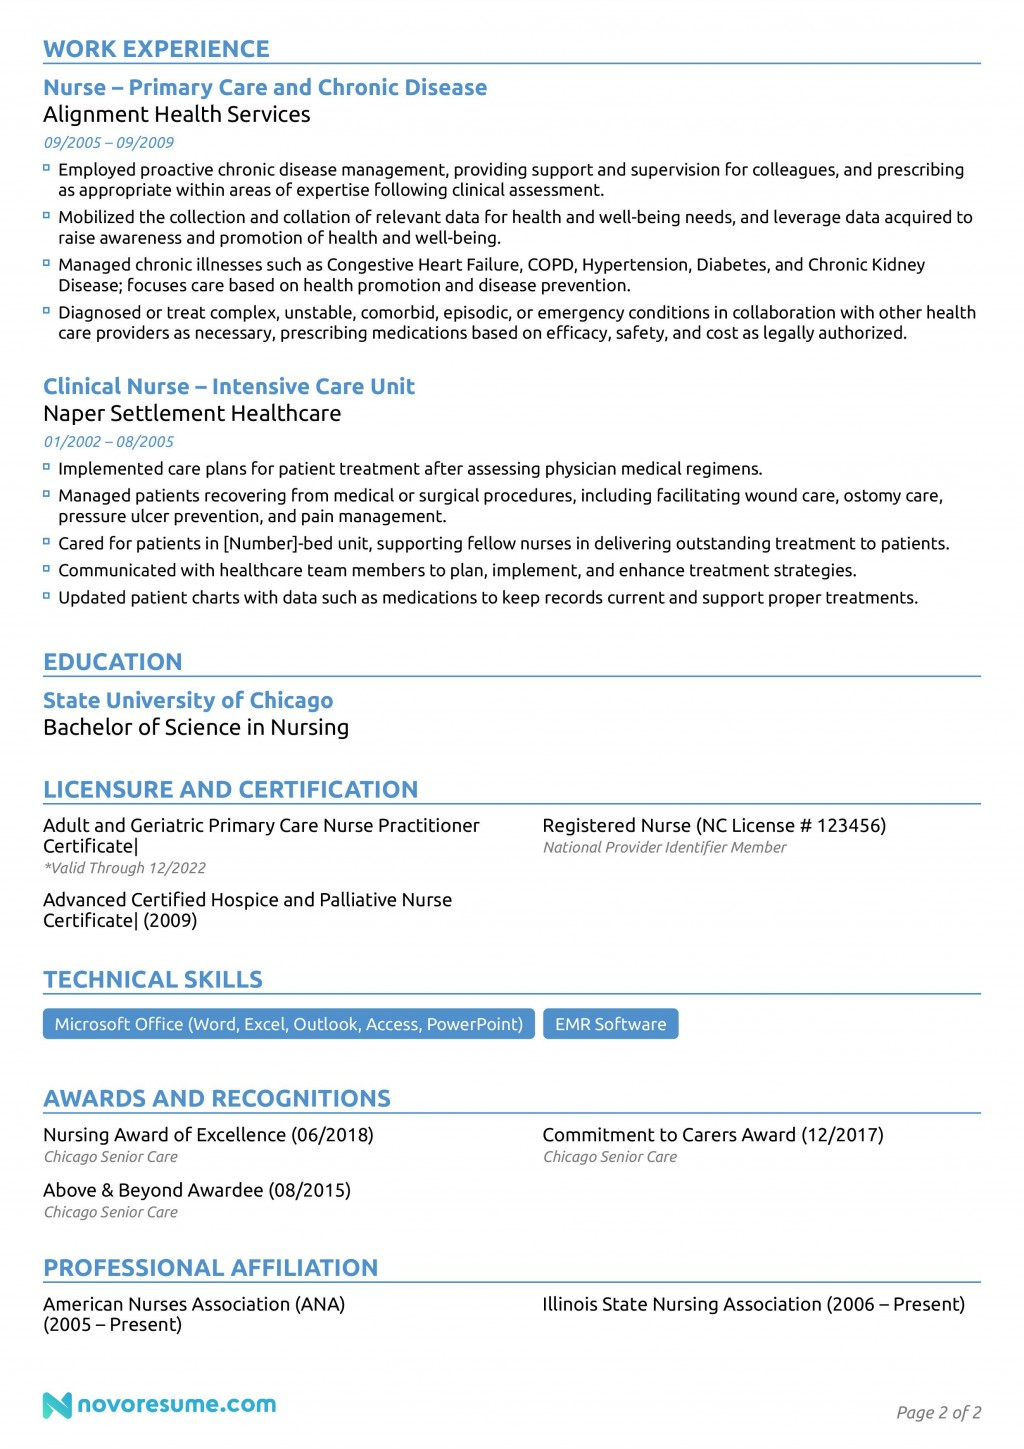 006 Phenomenal Nurse Resume Template Free Design  Graduate RnLarge